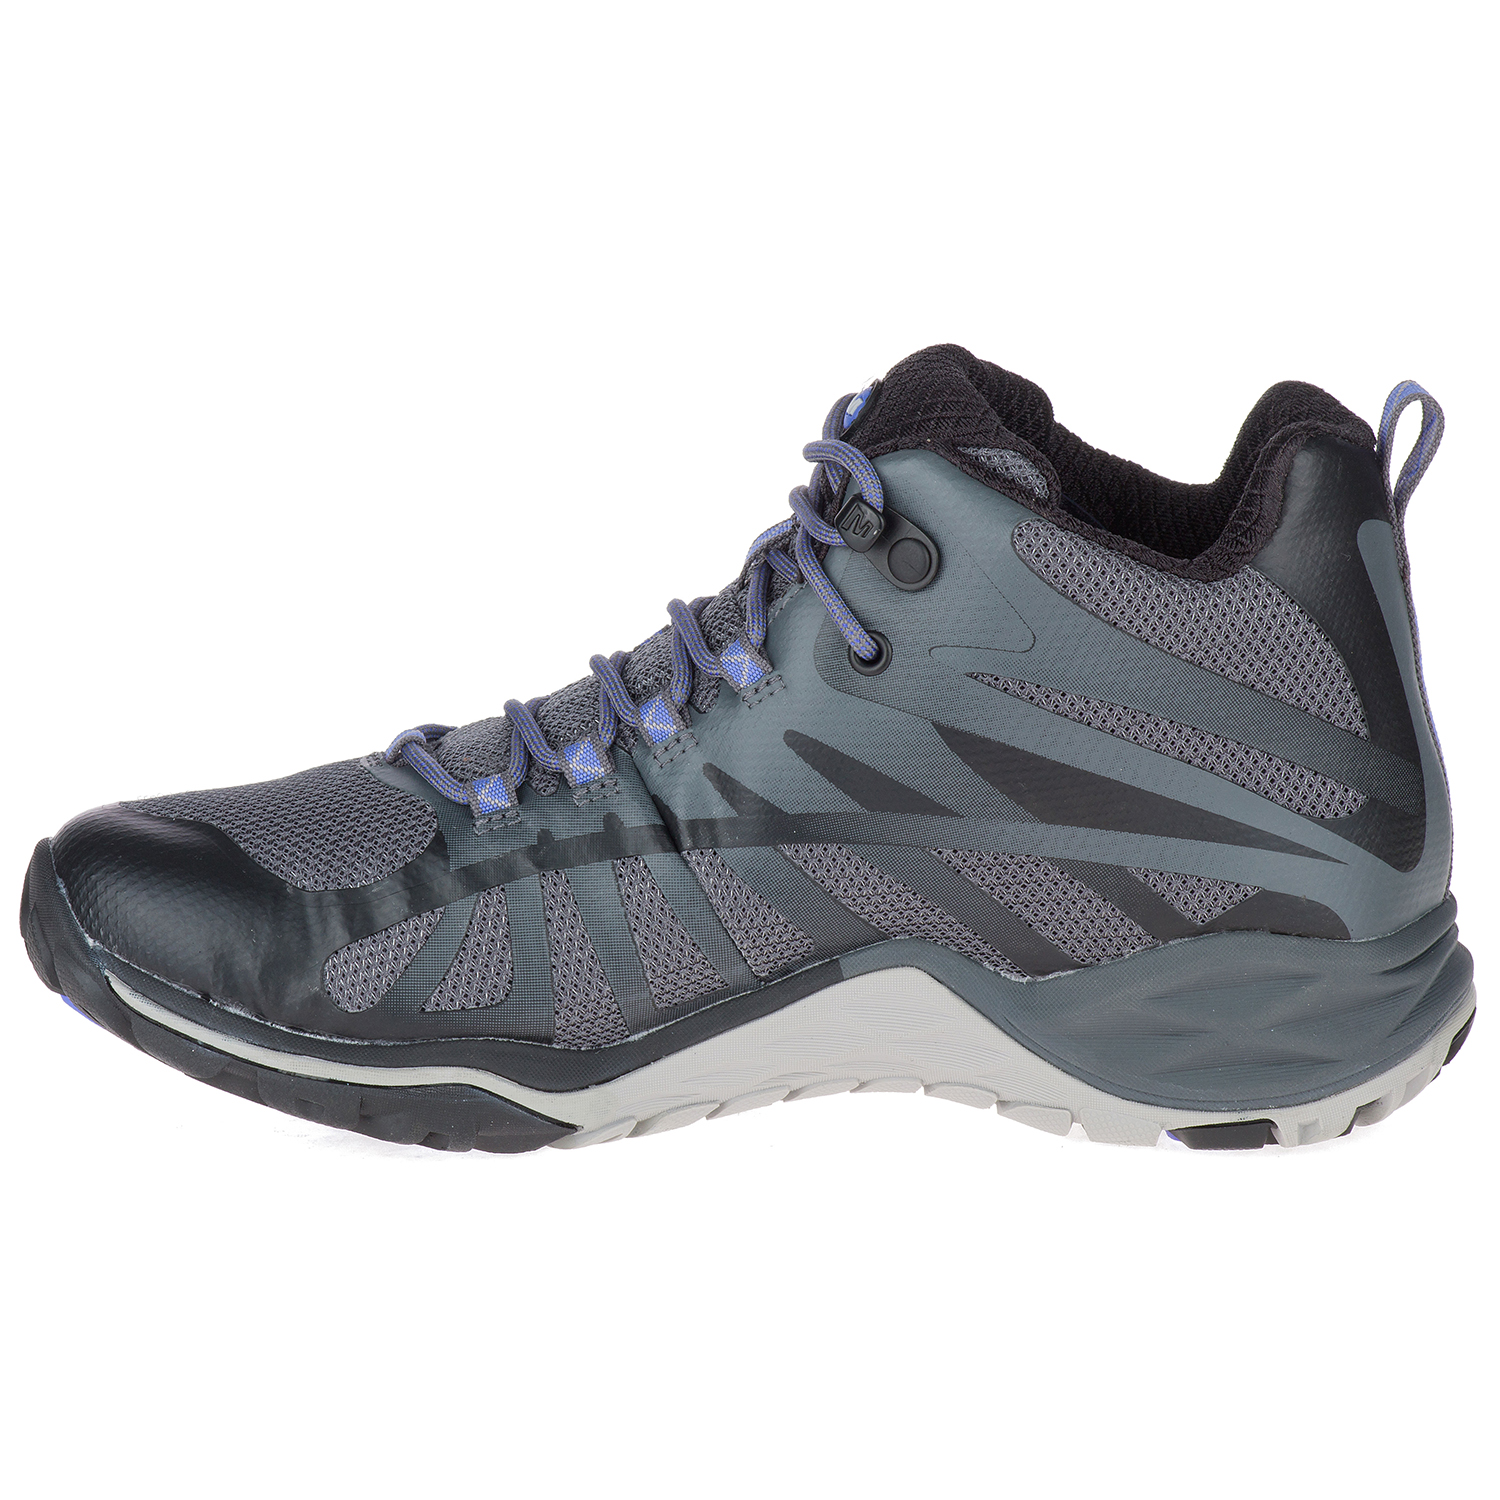 Merrell Siren Q2 Waterproof Mid Women/'s Outdoor Hiking Walking Boots Black